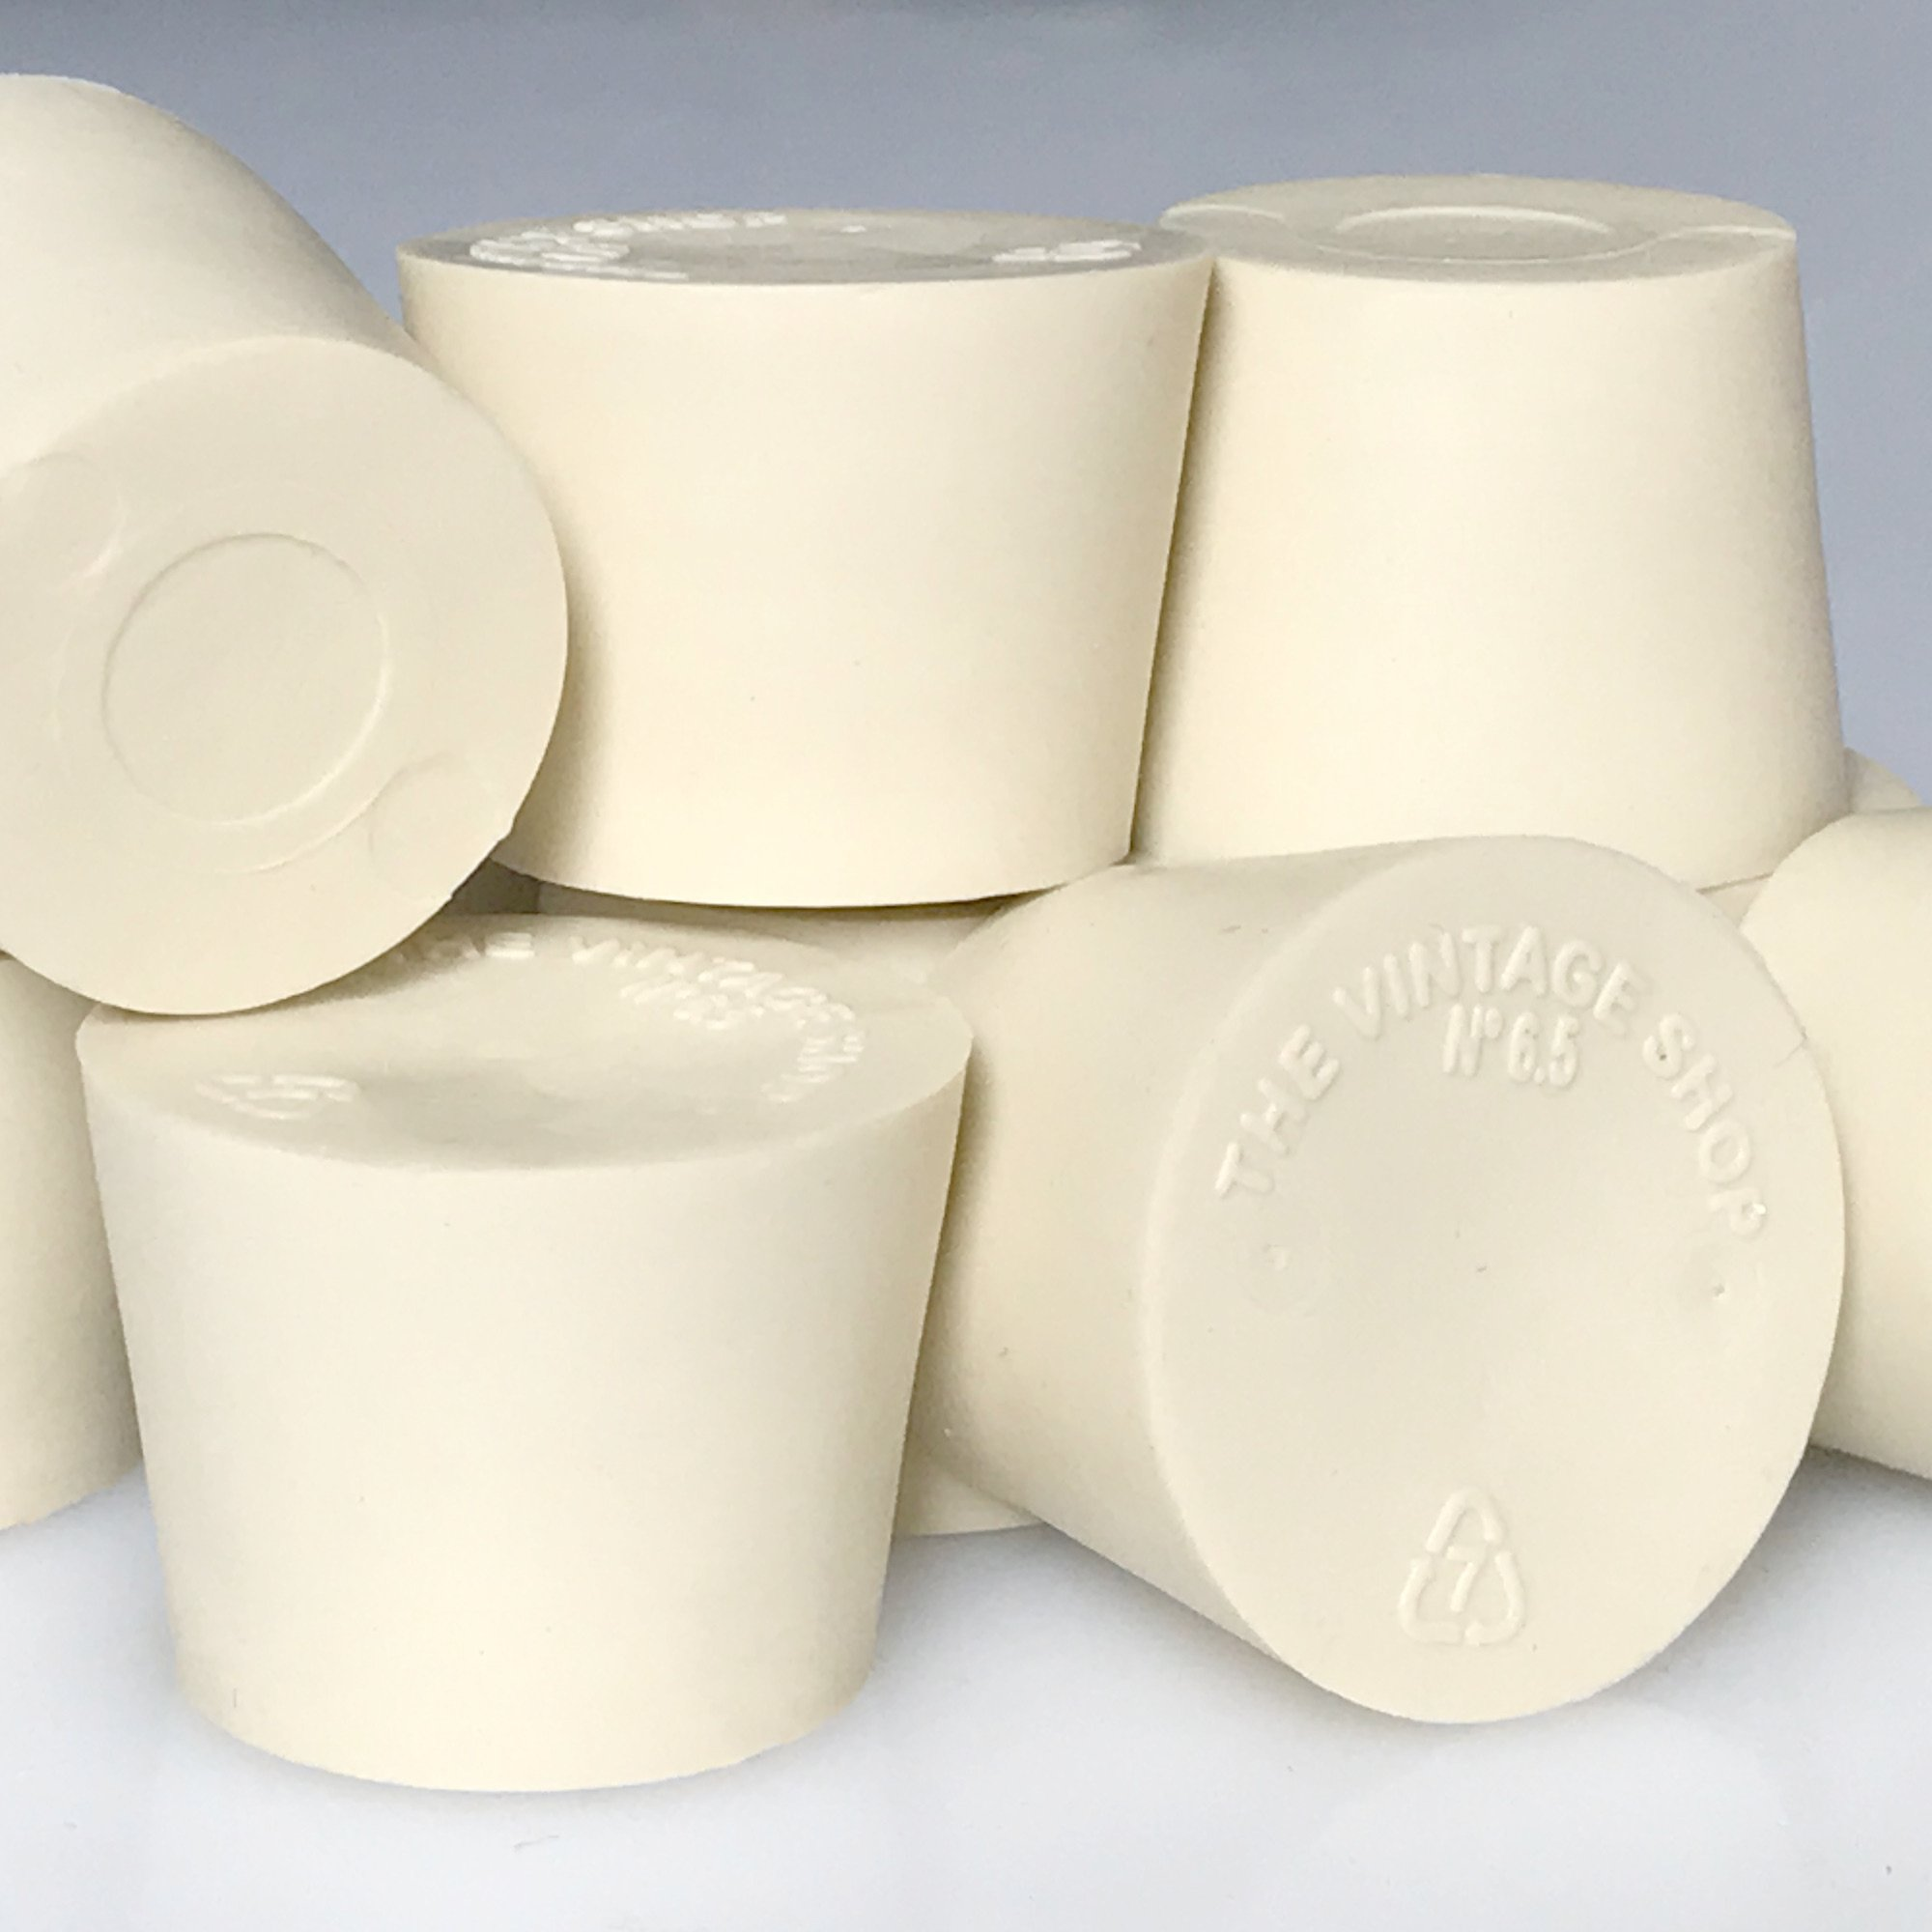 #6.5 Solid Rubber Stopper - 4-Pack